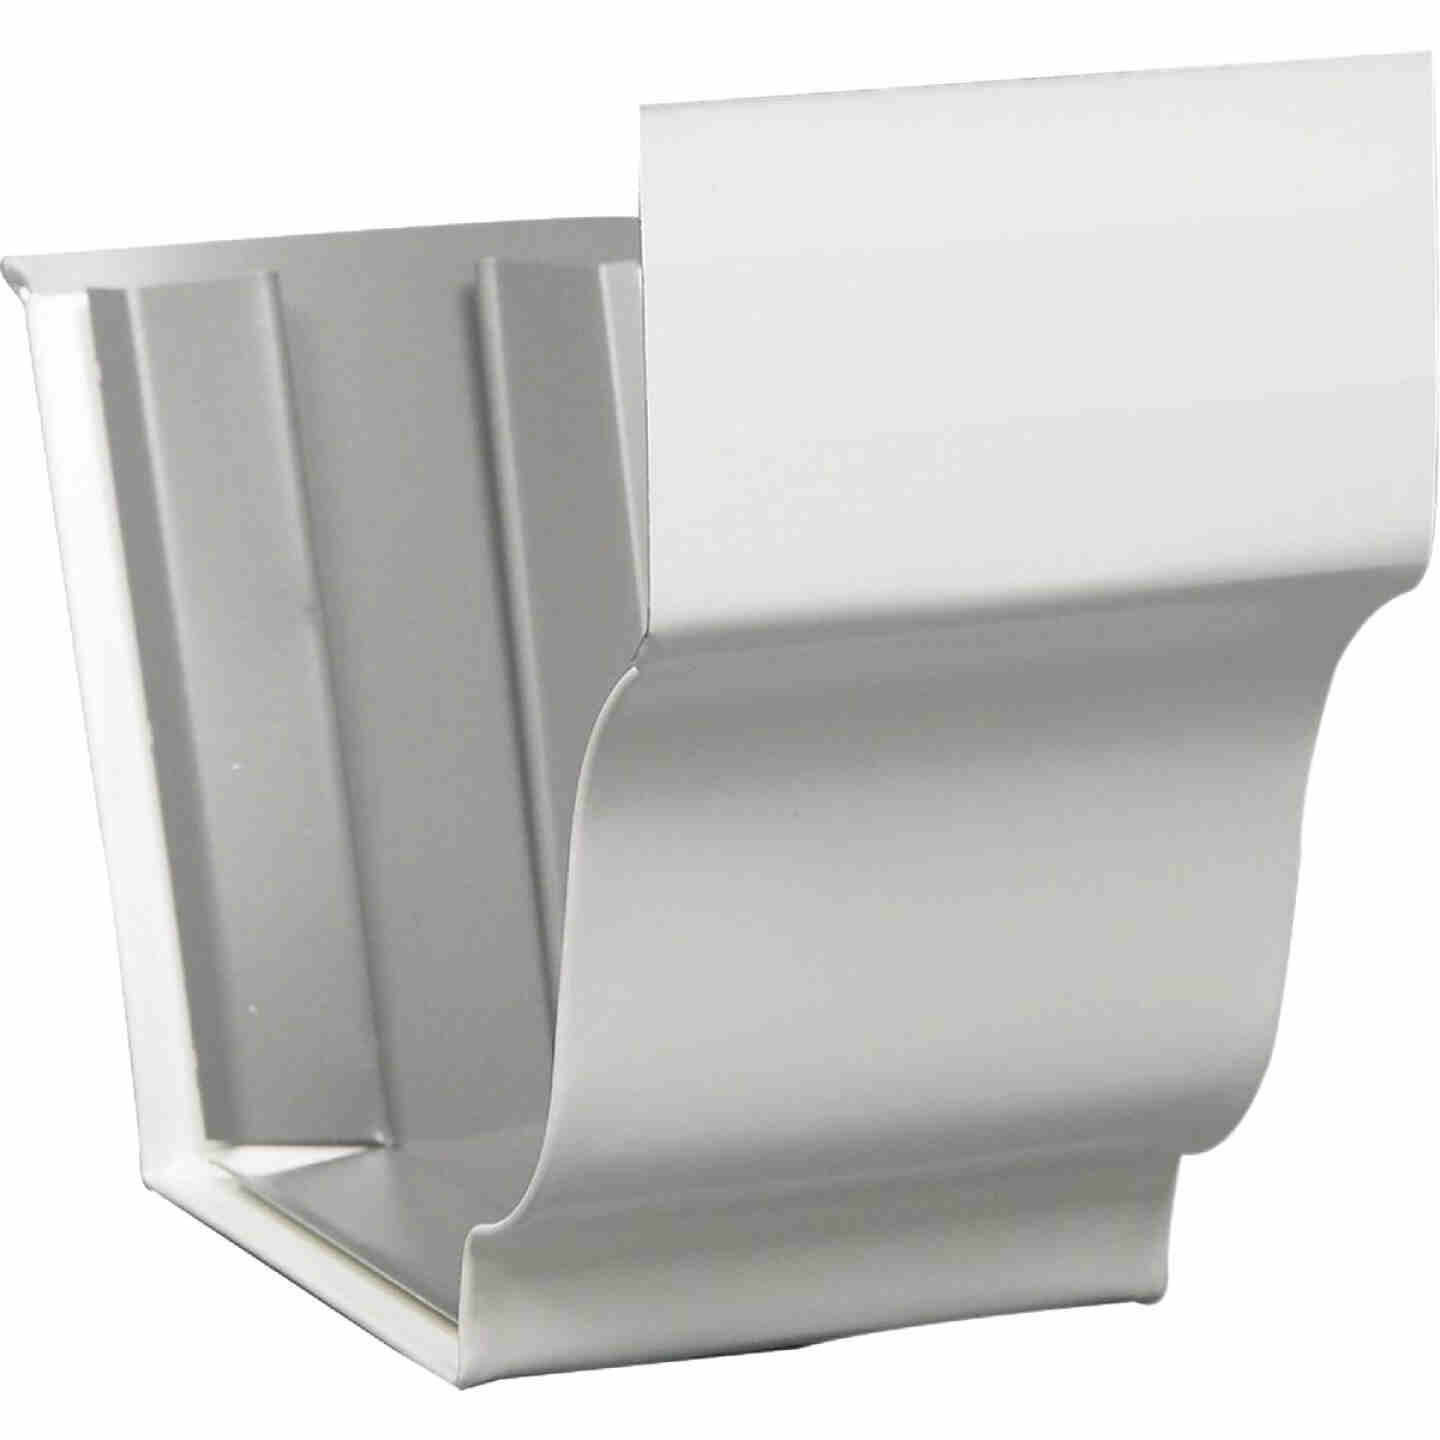 Amerimax 4 In. Galvanized White Slip-Joint Gutter Connector Image 1